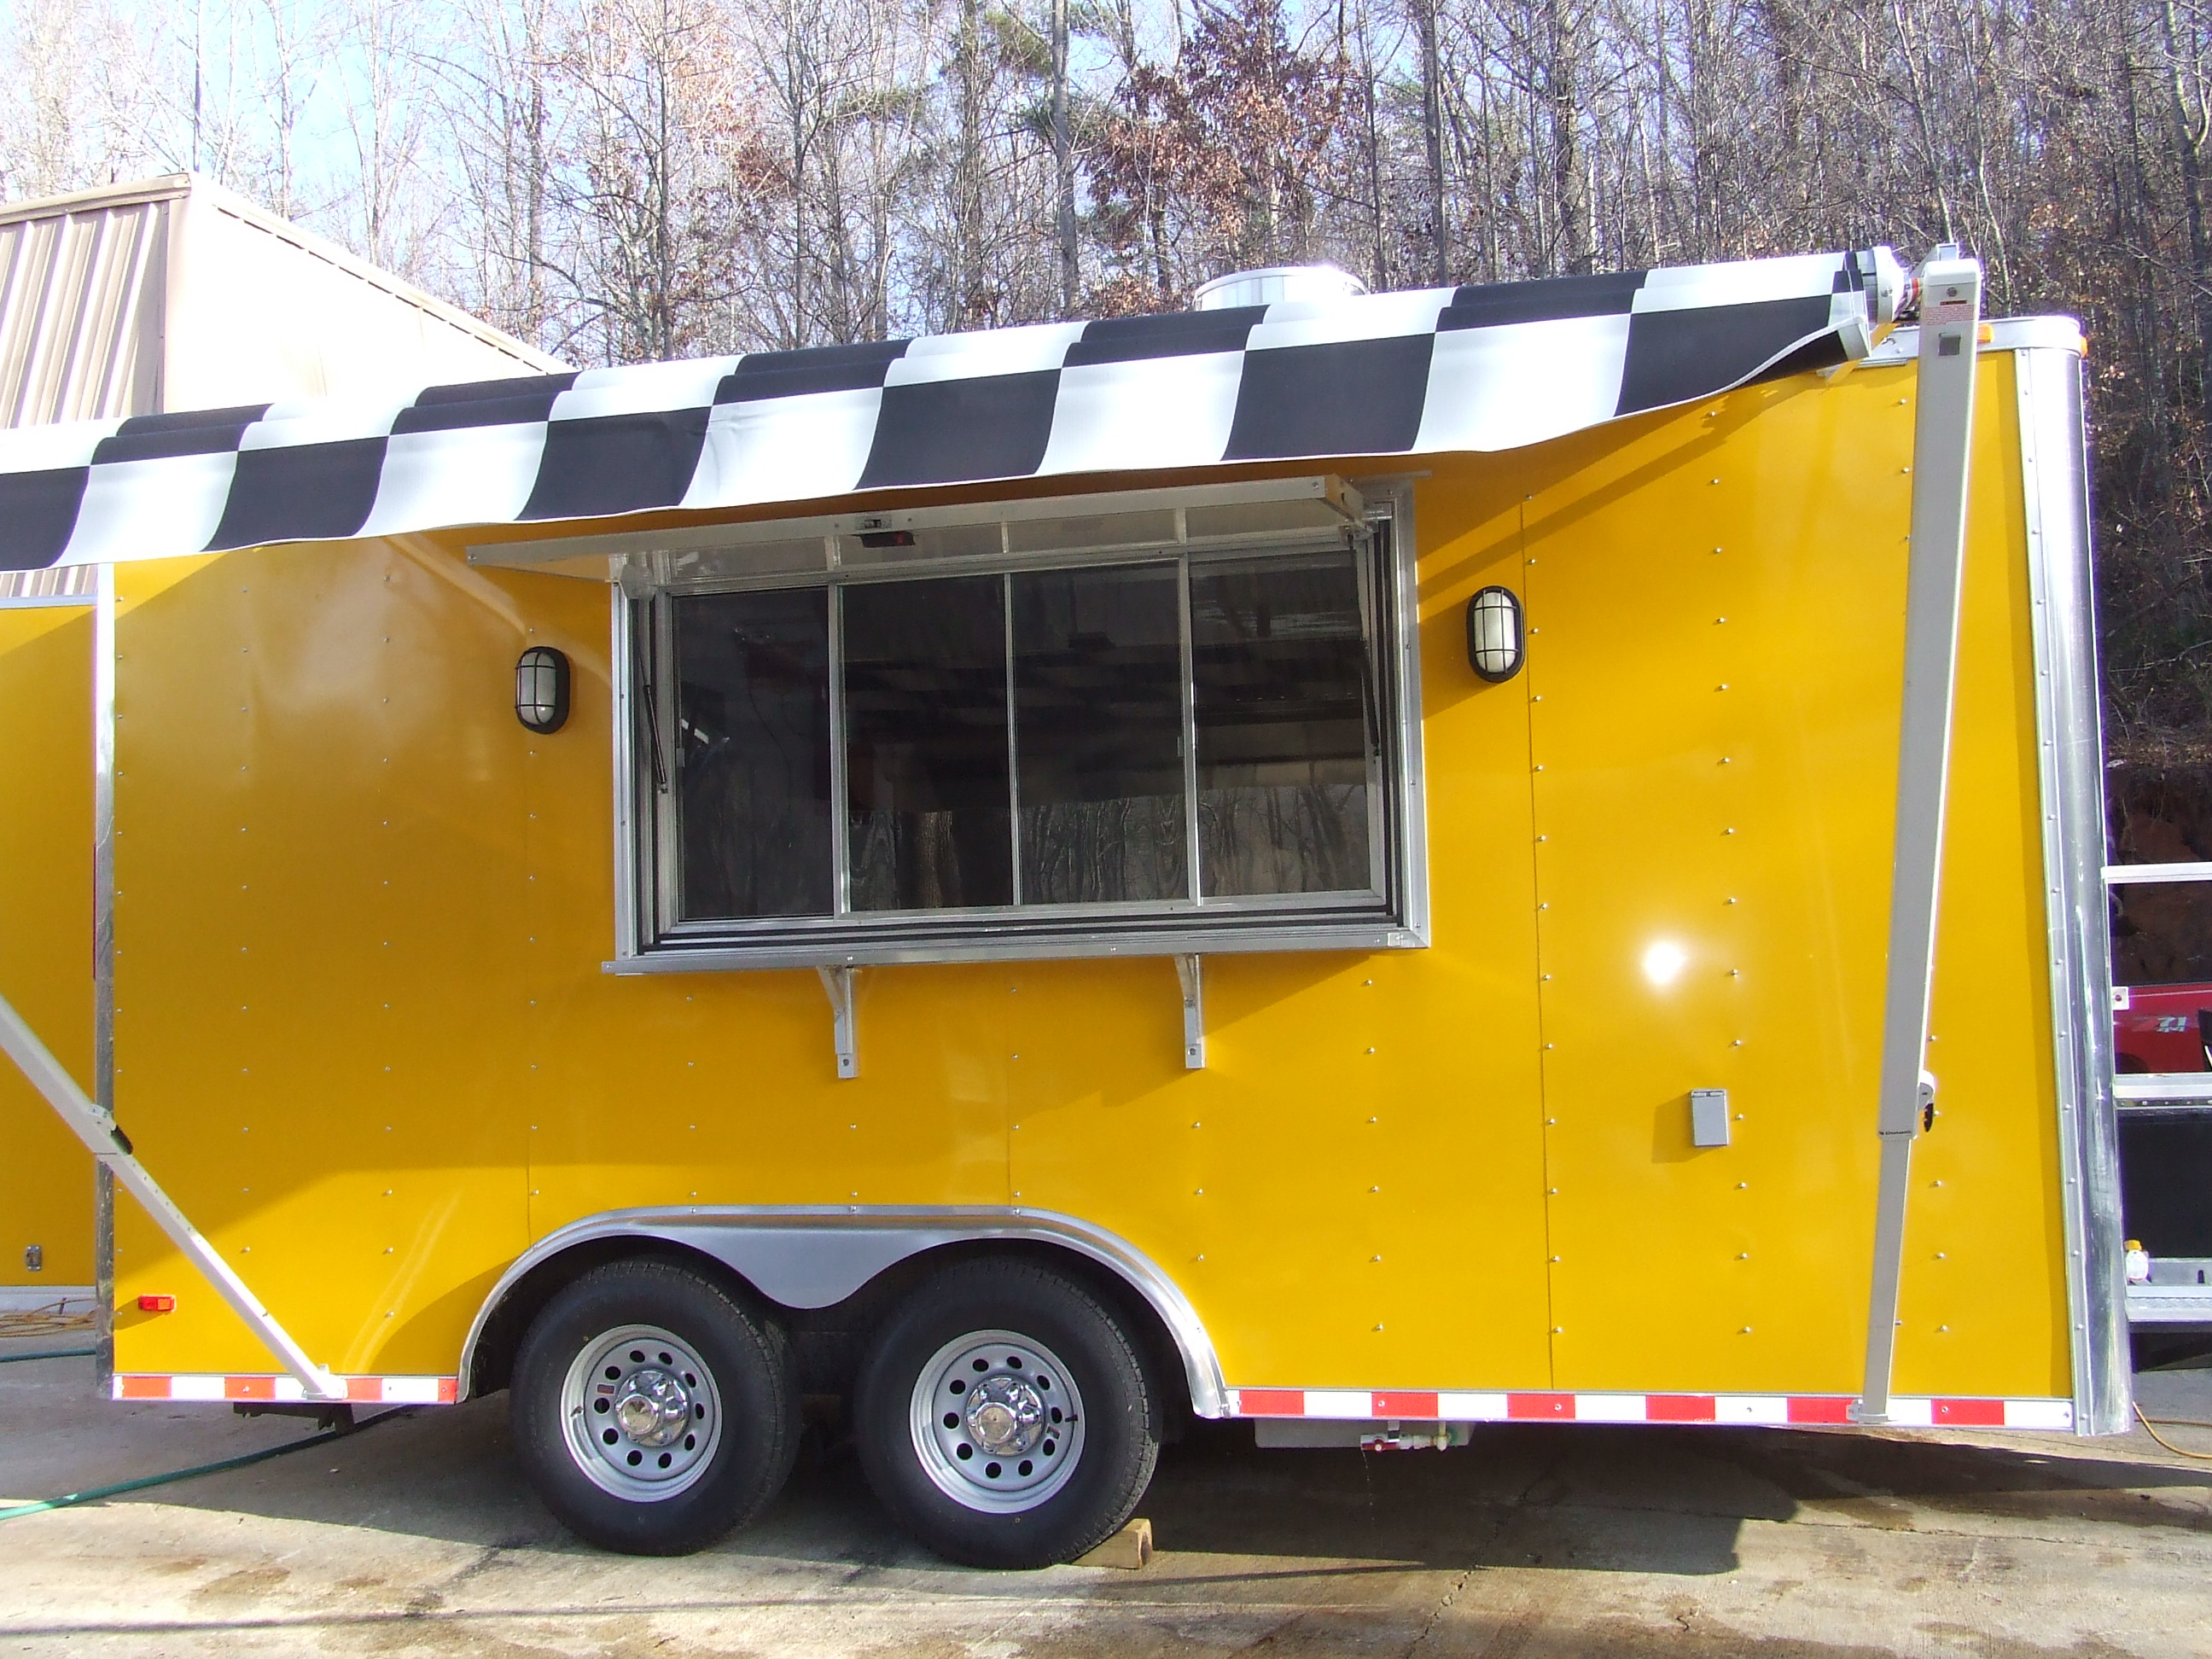 0002 Yellow Trailer With BW Awning